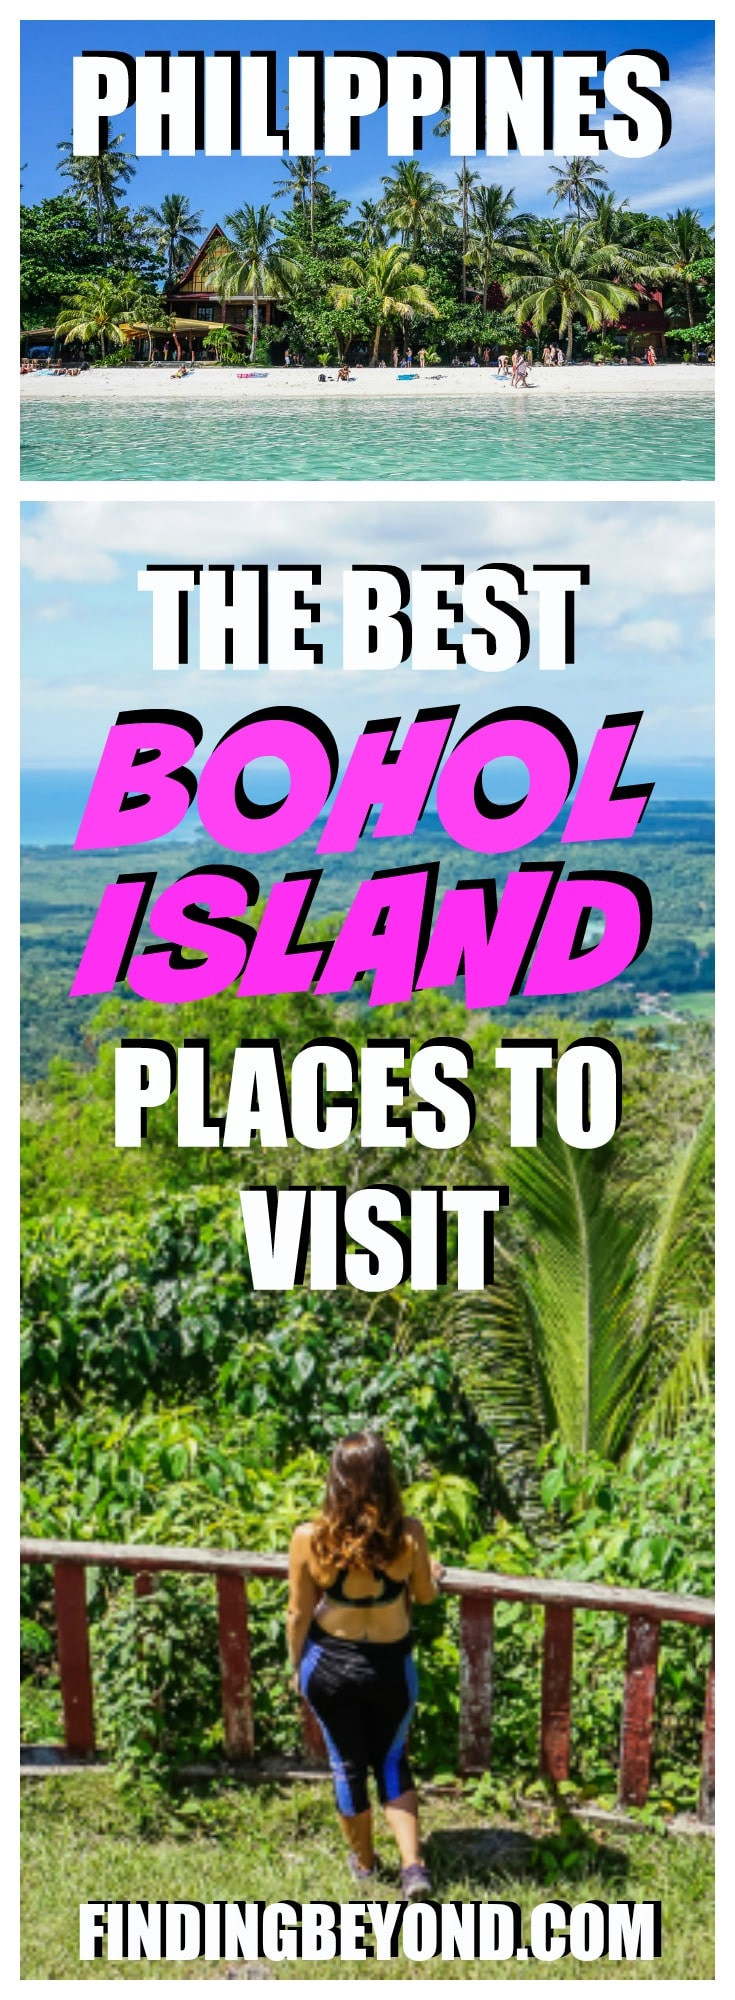 Bohol Island should be added to everyone's Philippine island hopping itinerary. Check out our best places in Bohol to visit and other Bohol attractions.